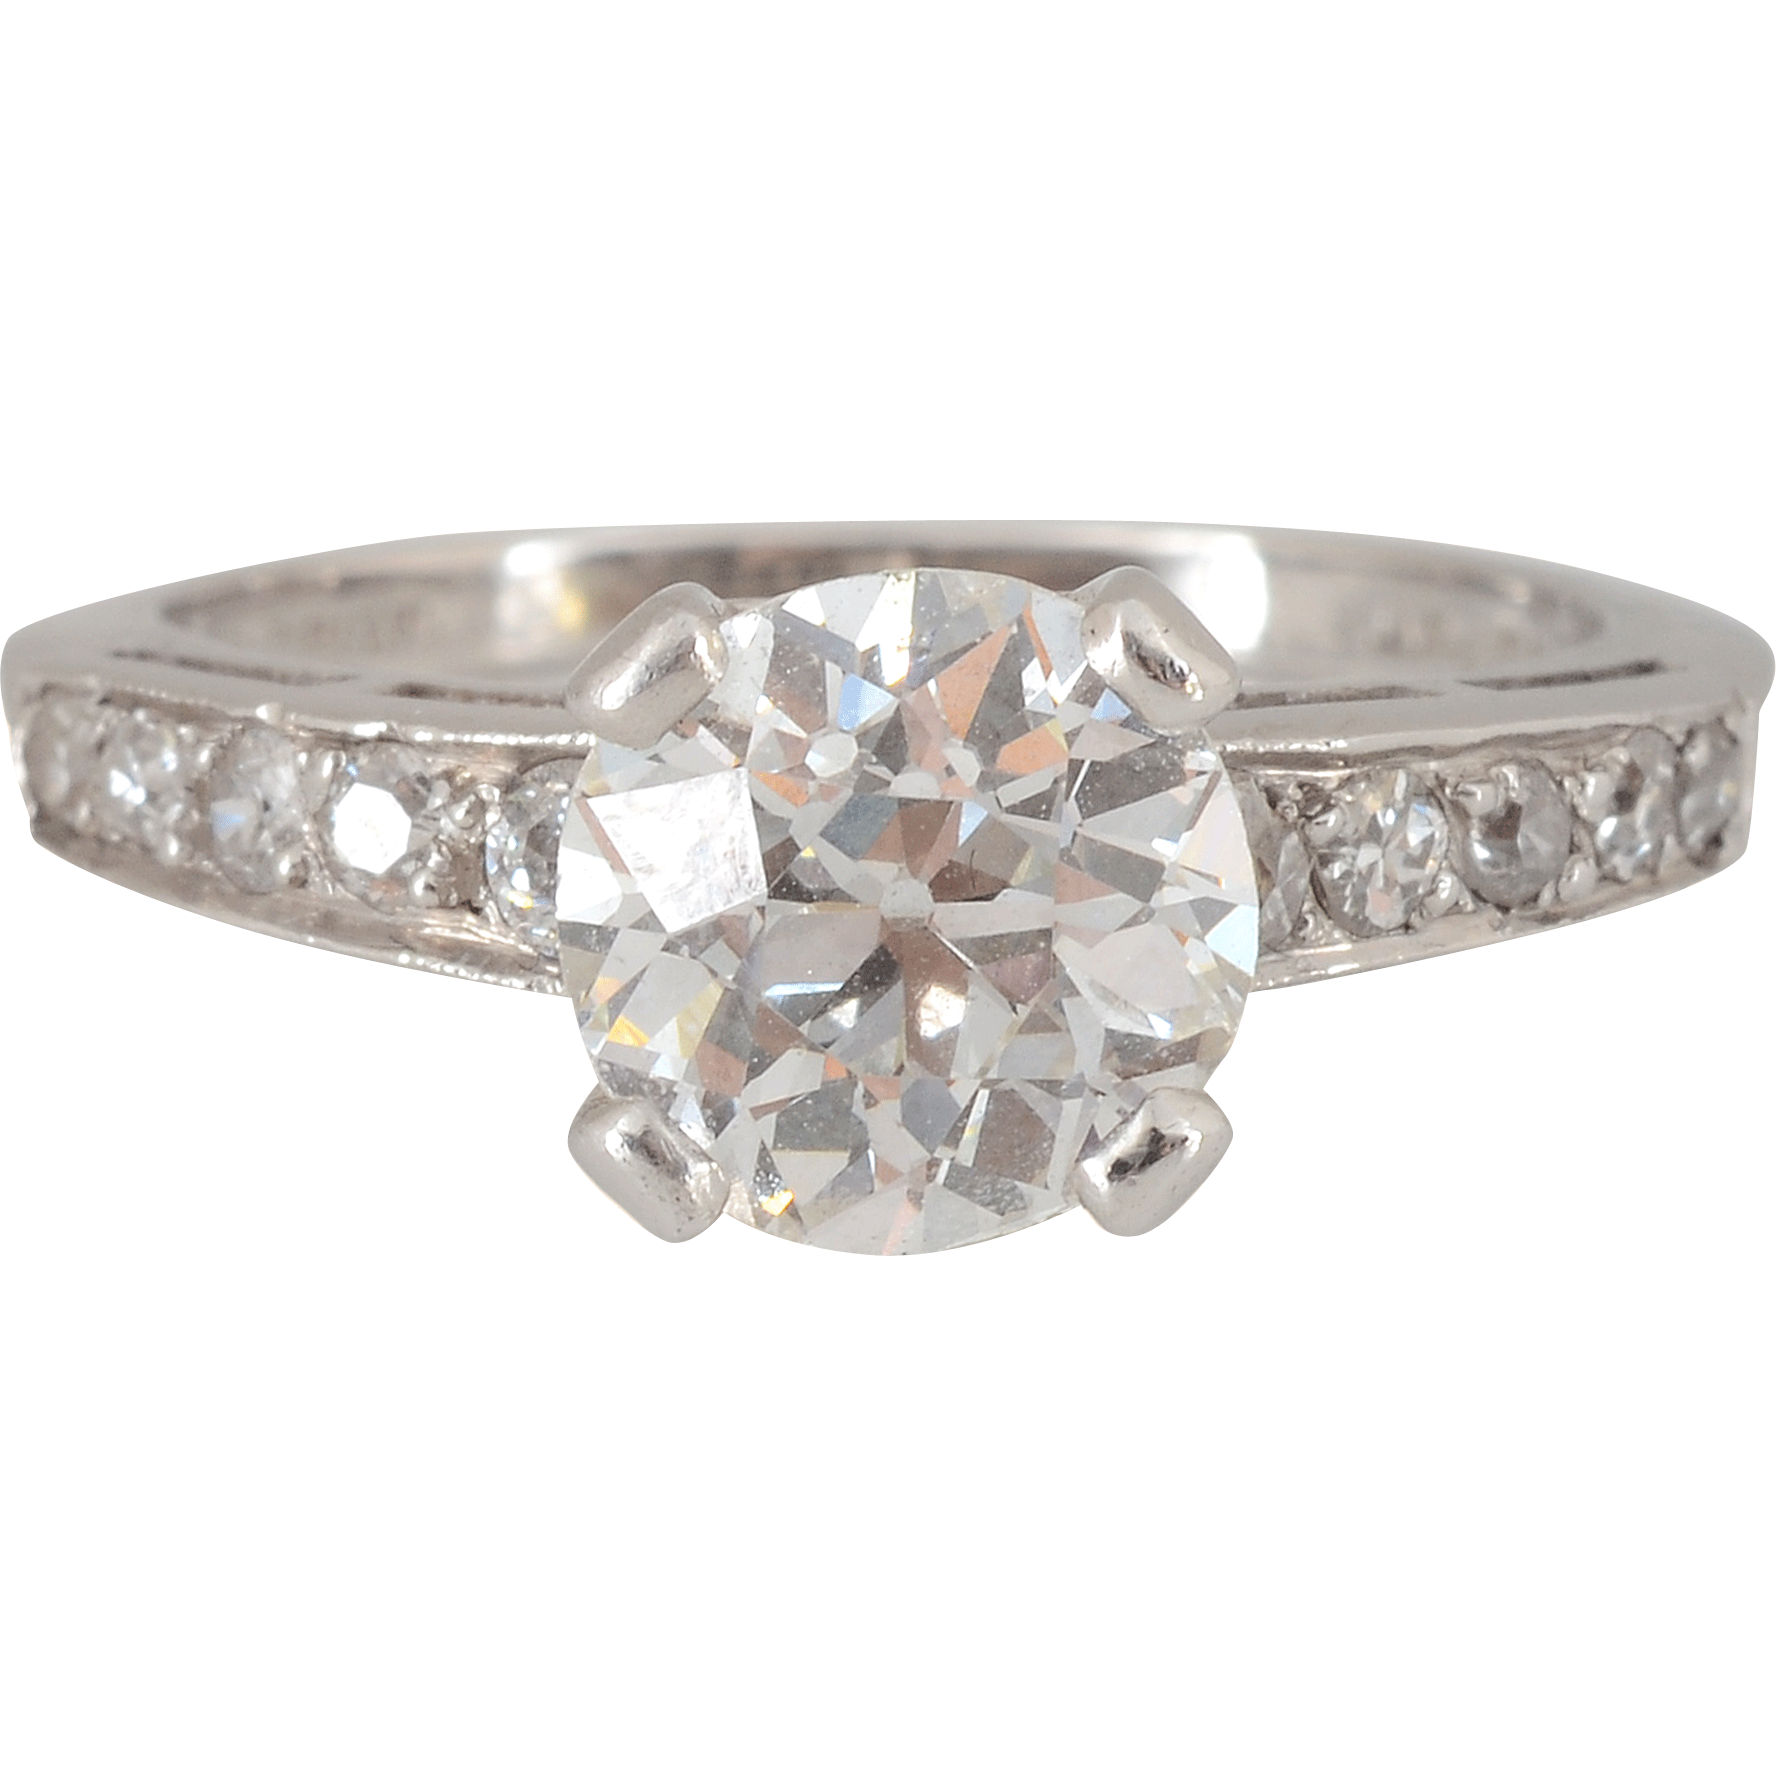 1.69 Carat Center Diamond Engagement Ring